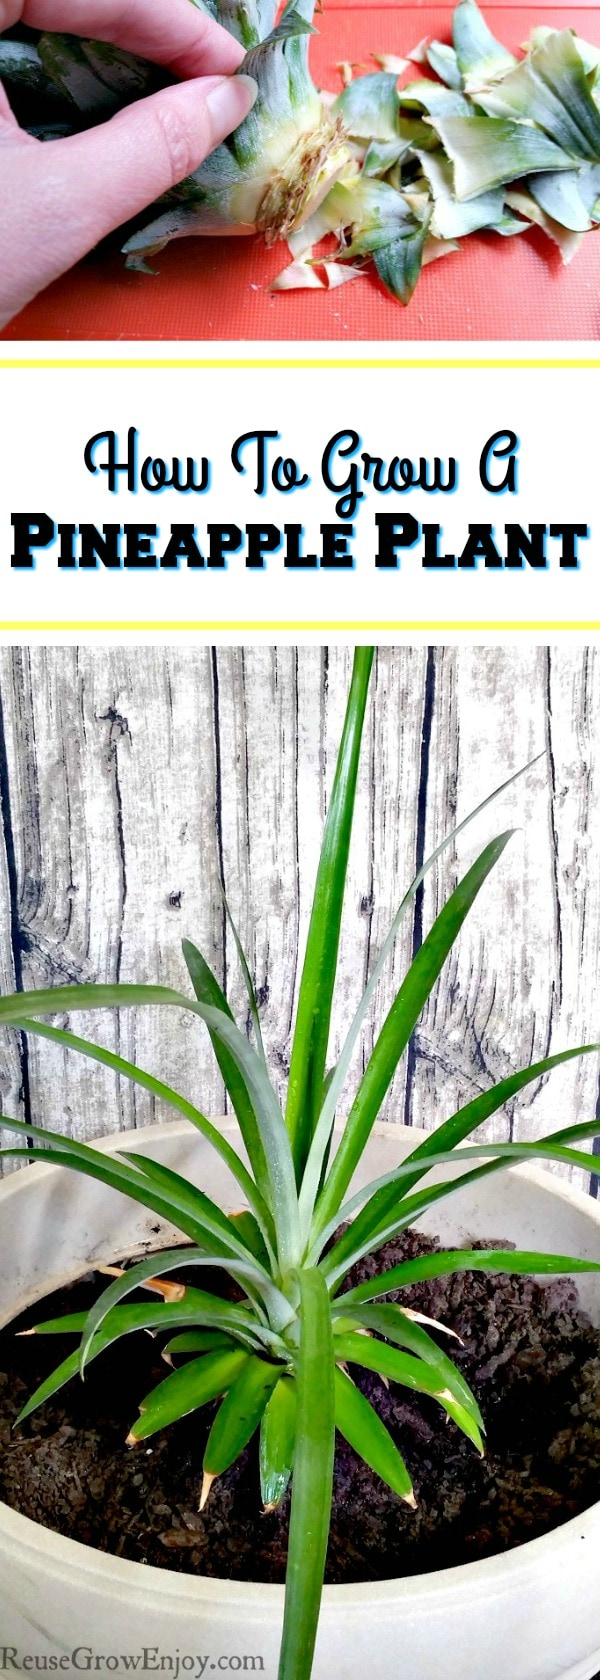 Do you know how to grow a pineapple plant? You can even do it by reusing the top of a fresh pineapple and I will show you how to grow a pineapple plant!